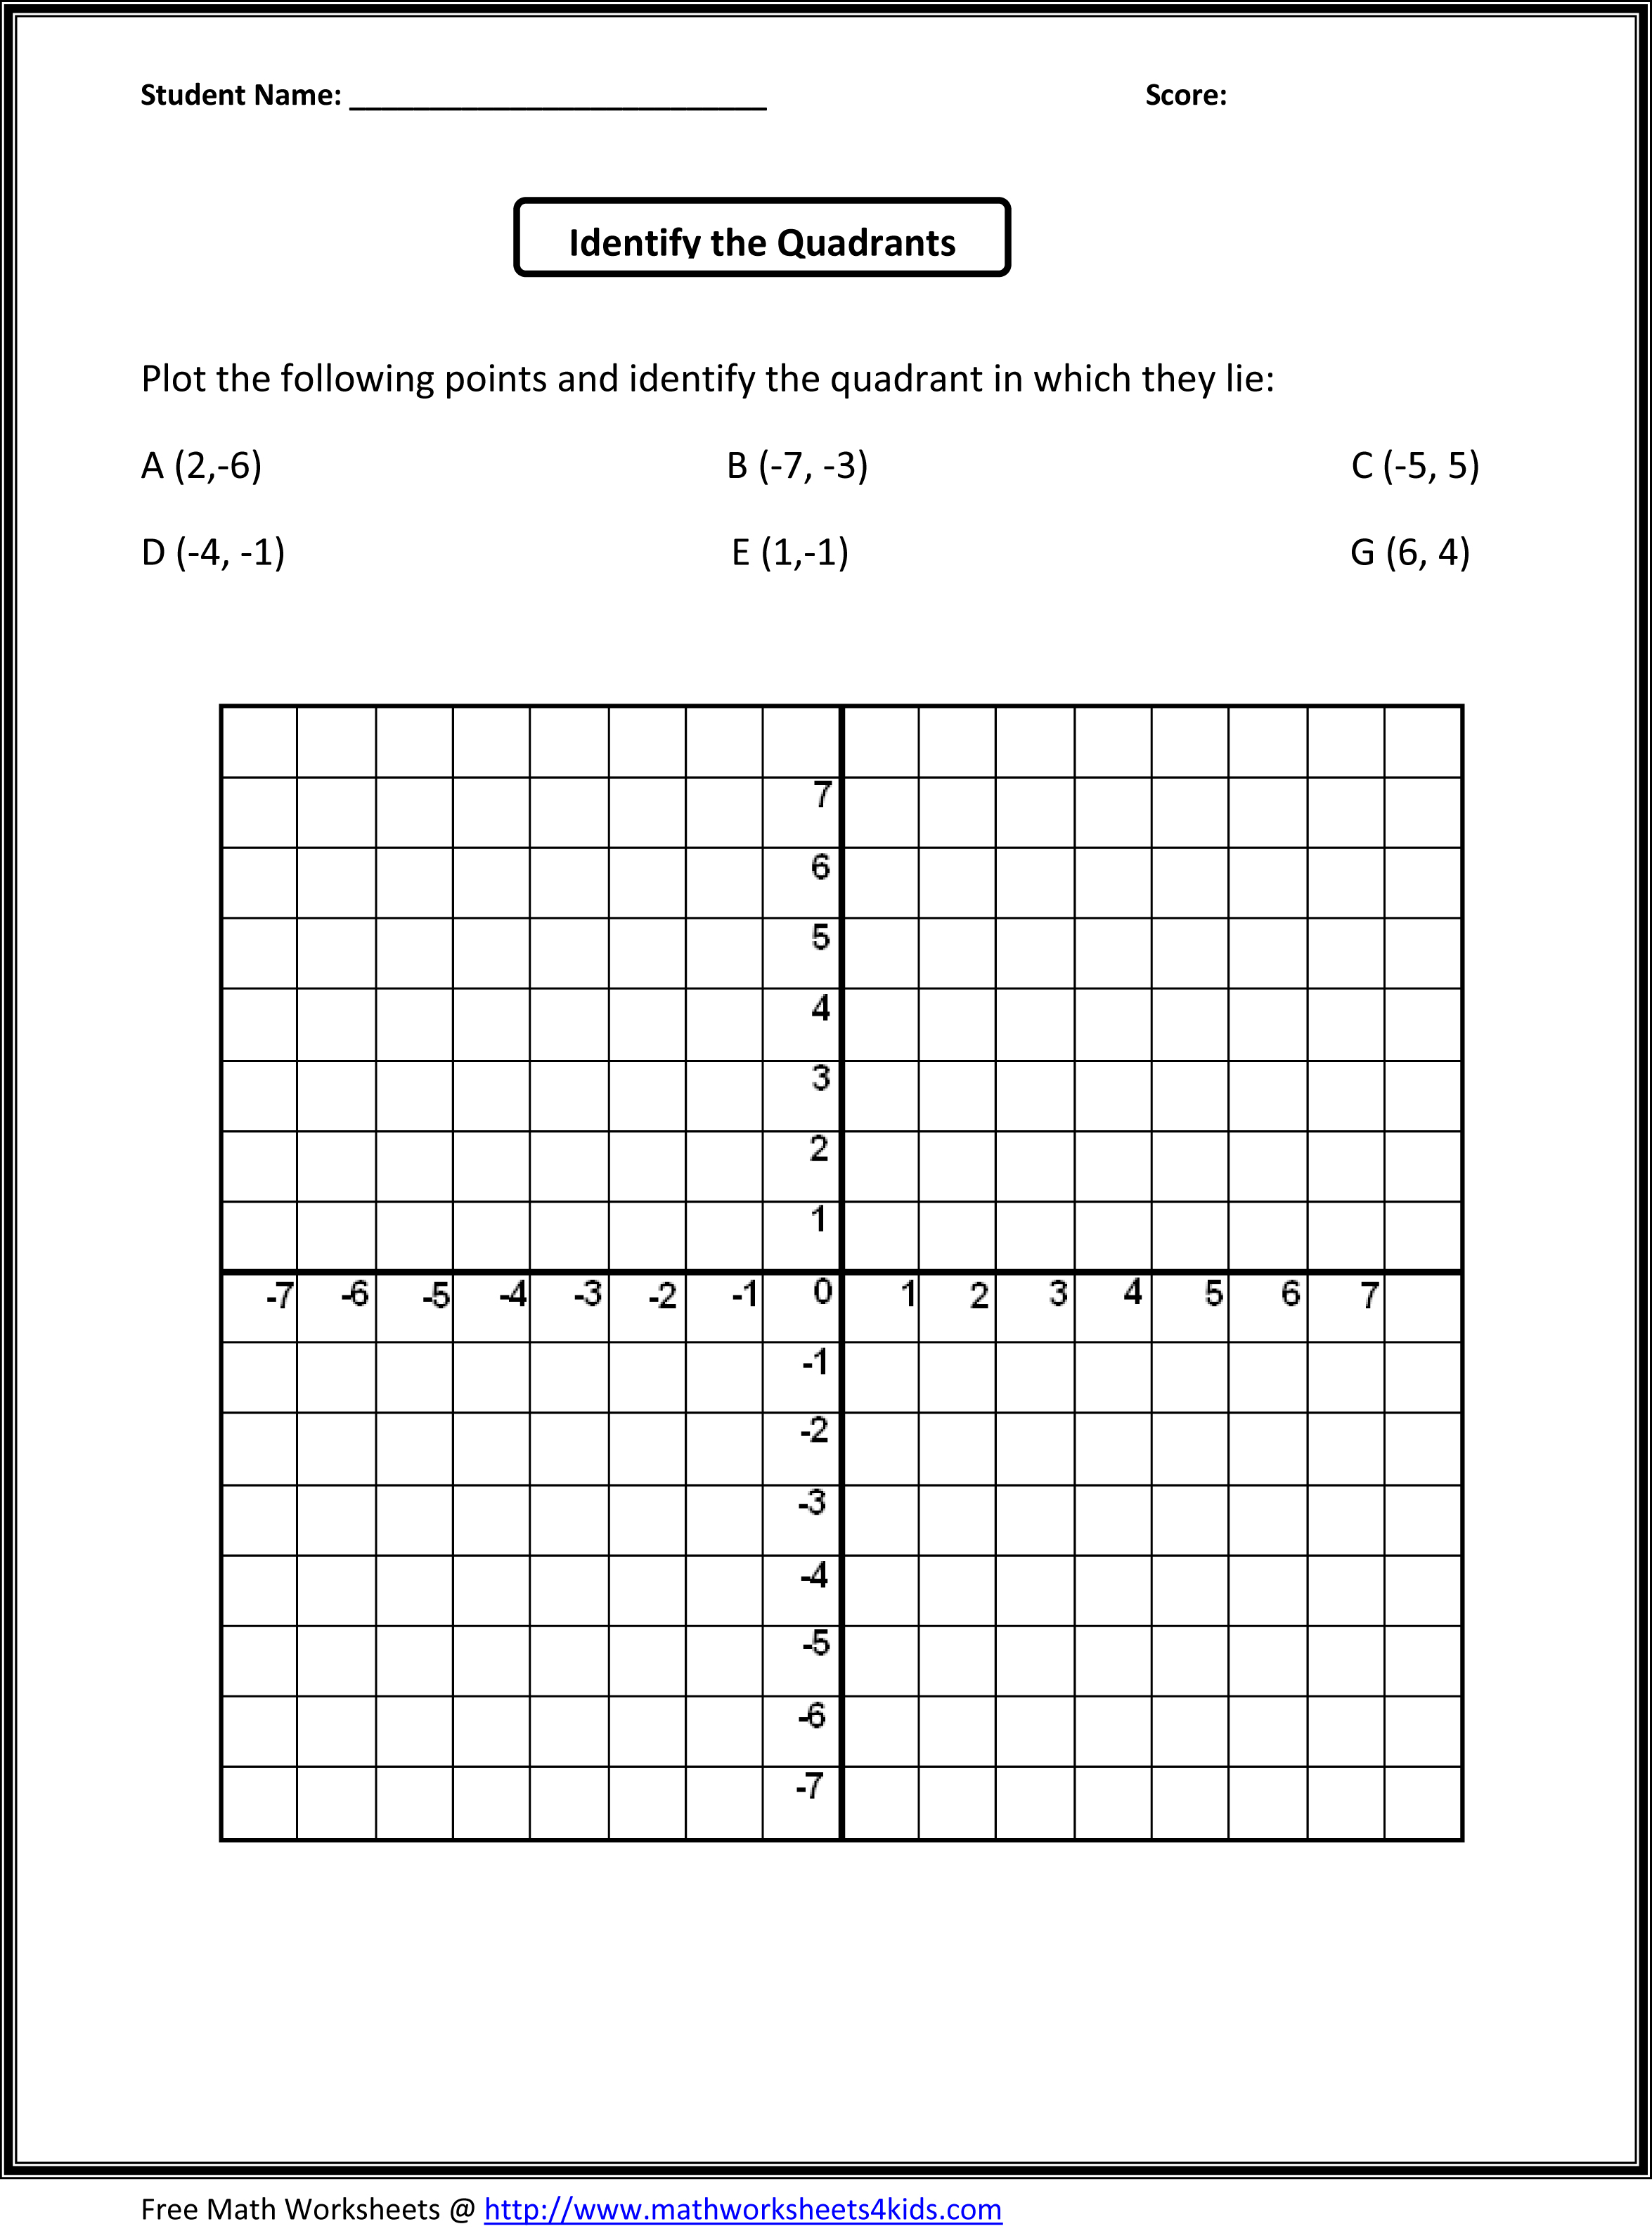 Hard math problems for 5th graders Coursework Help – Math Worksheets for Fifth Grade